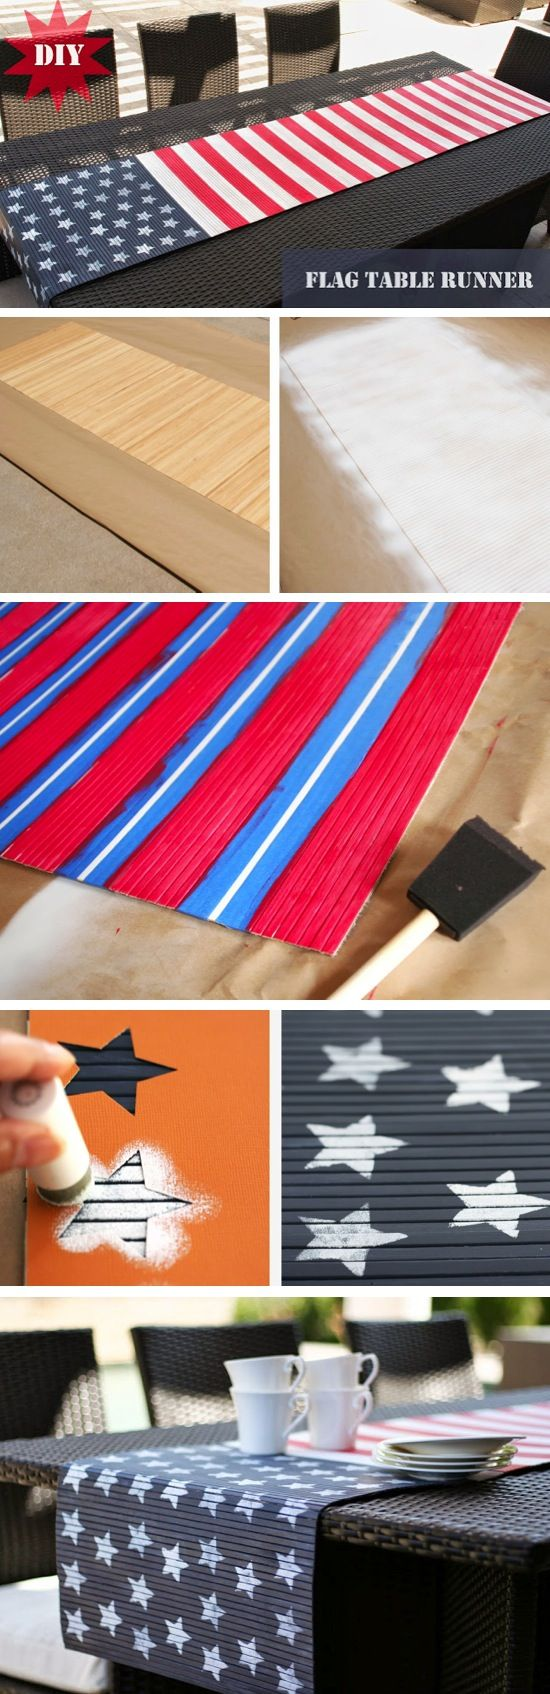 DIY American Flag Table Runner   Made with a bamboo table runner and little bit of paint! It's easy to store and doesn't wrinkle.